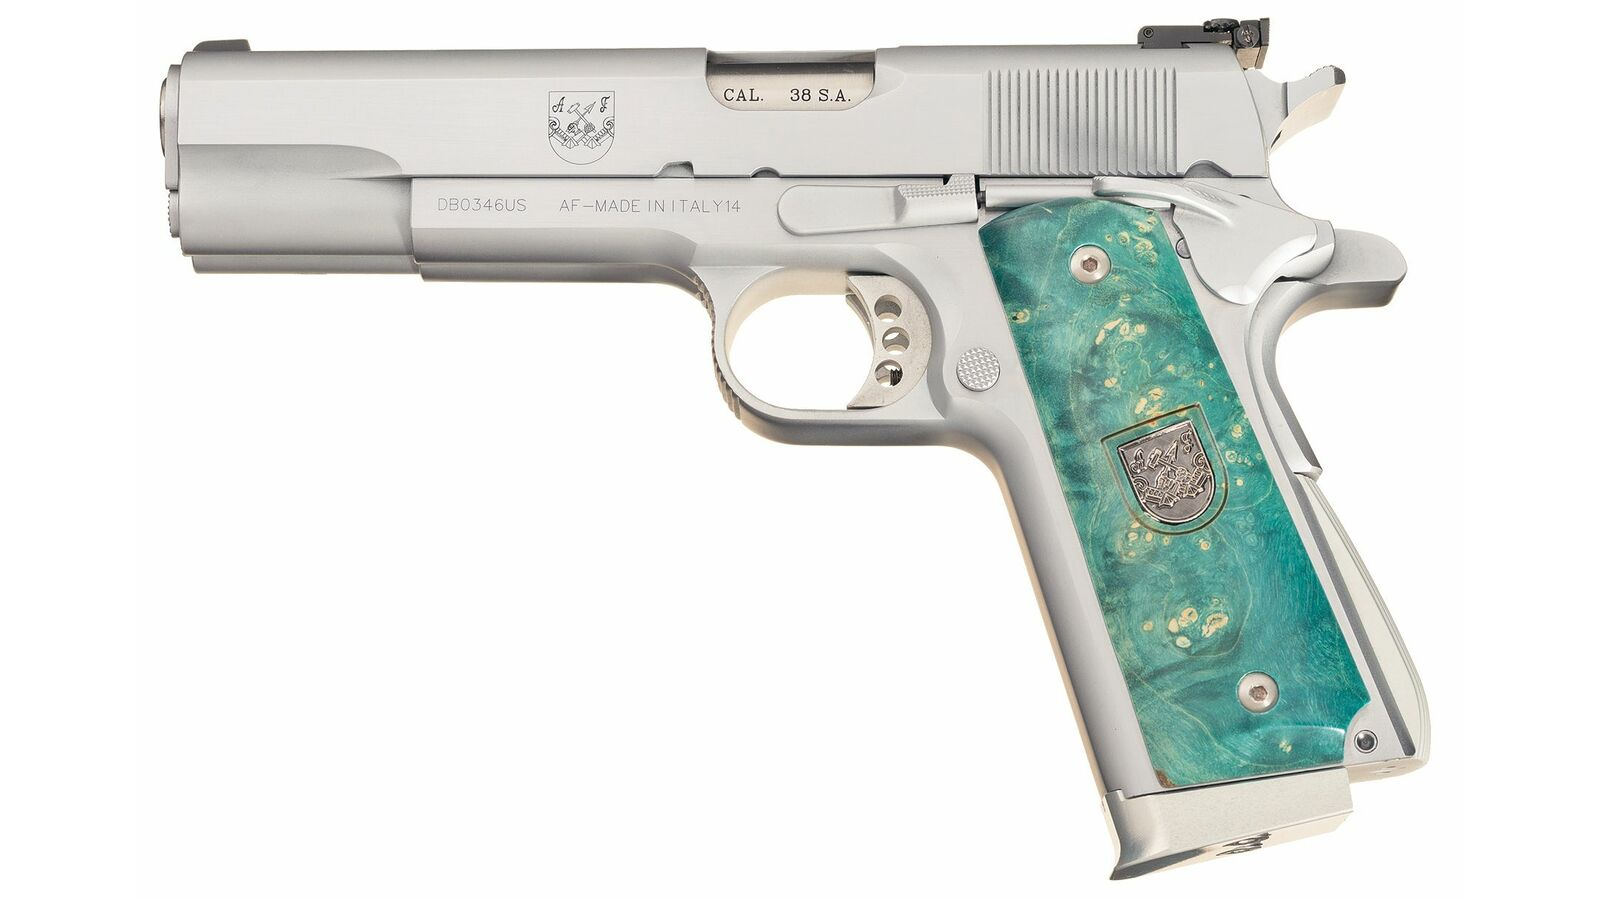 Af2011 A1 arsenal firearms af2011-a1 double barrel semi-automatic pistol